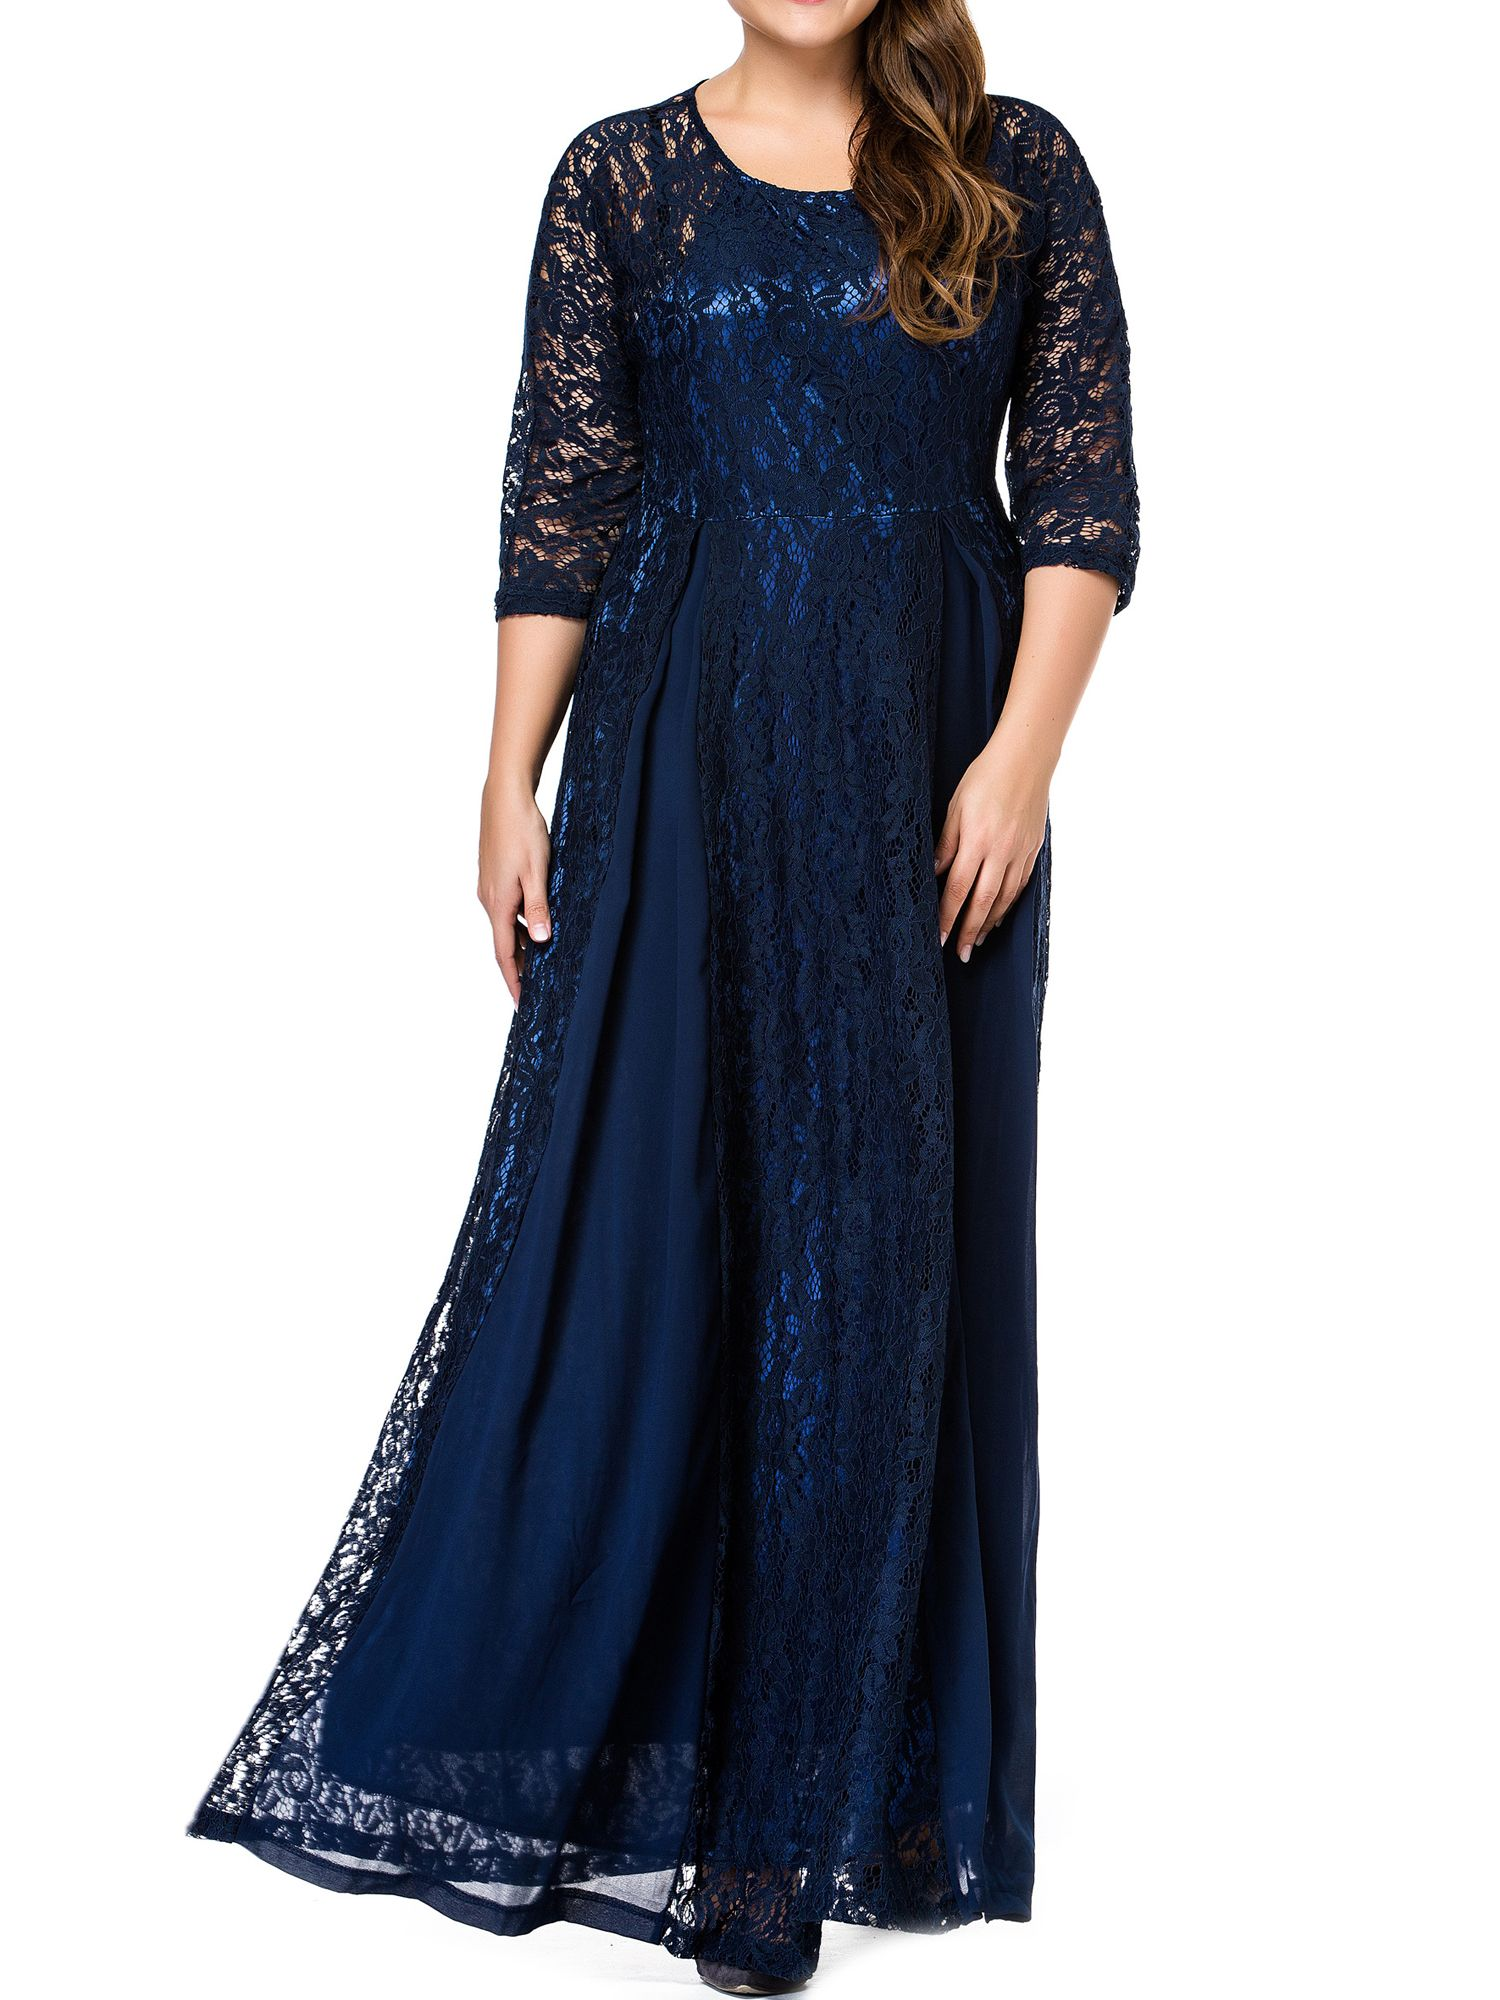 8e393cef4c33b ESPRLIA Women's Plus Size Floral Lace 3/4 Sleeve Wedding Maxi Dress ...